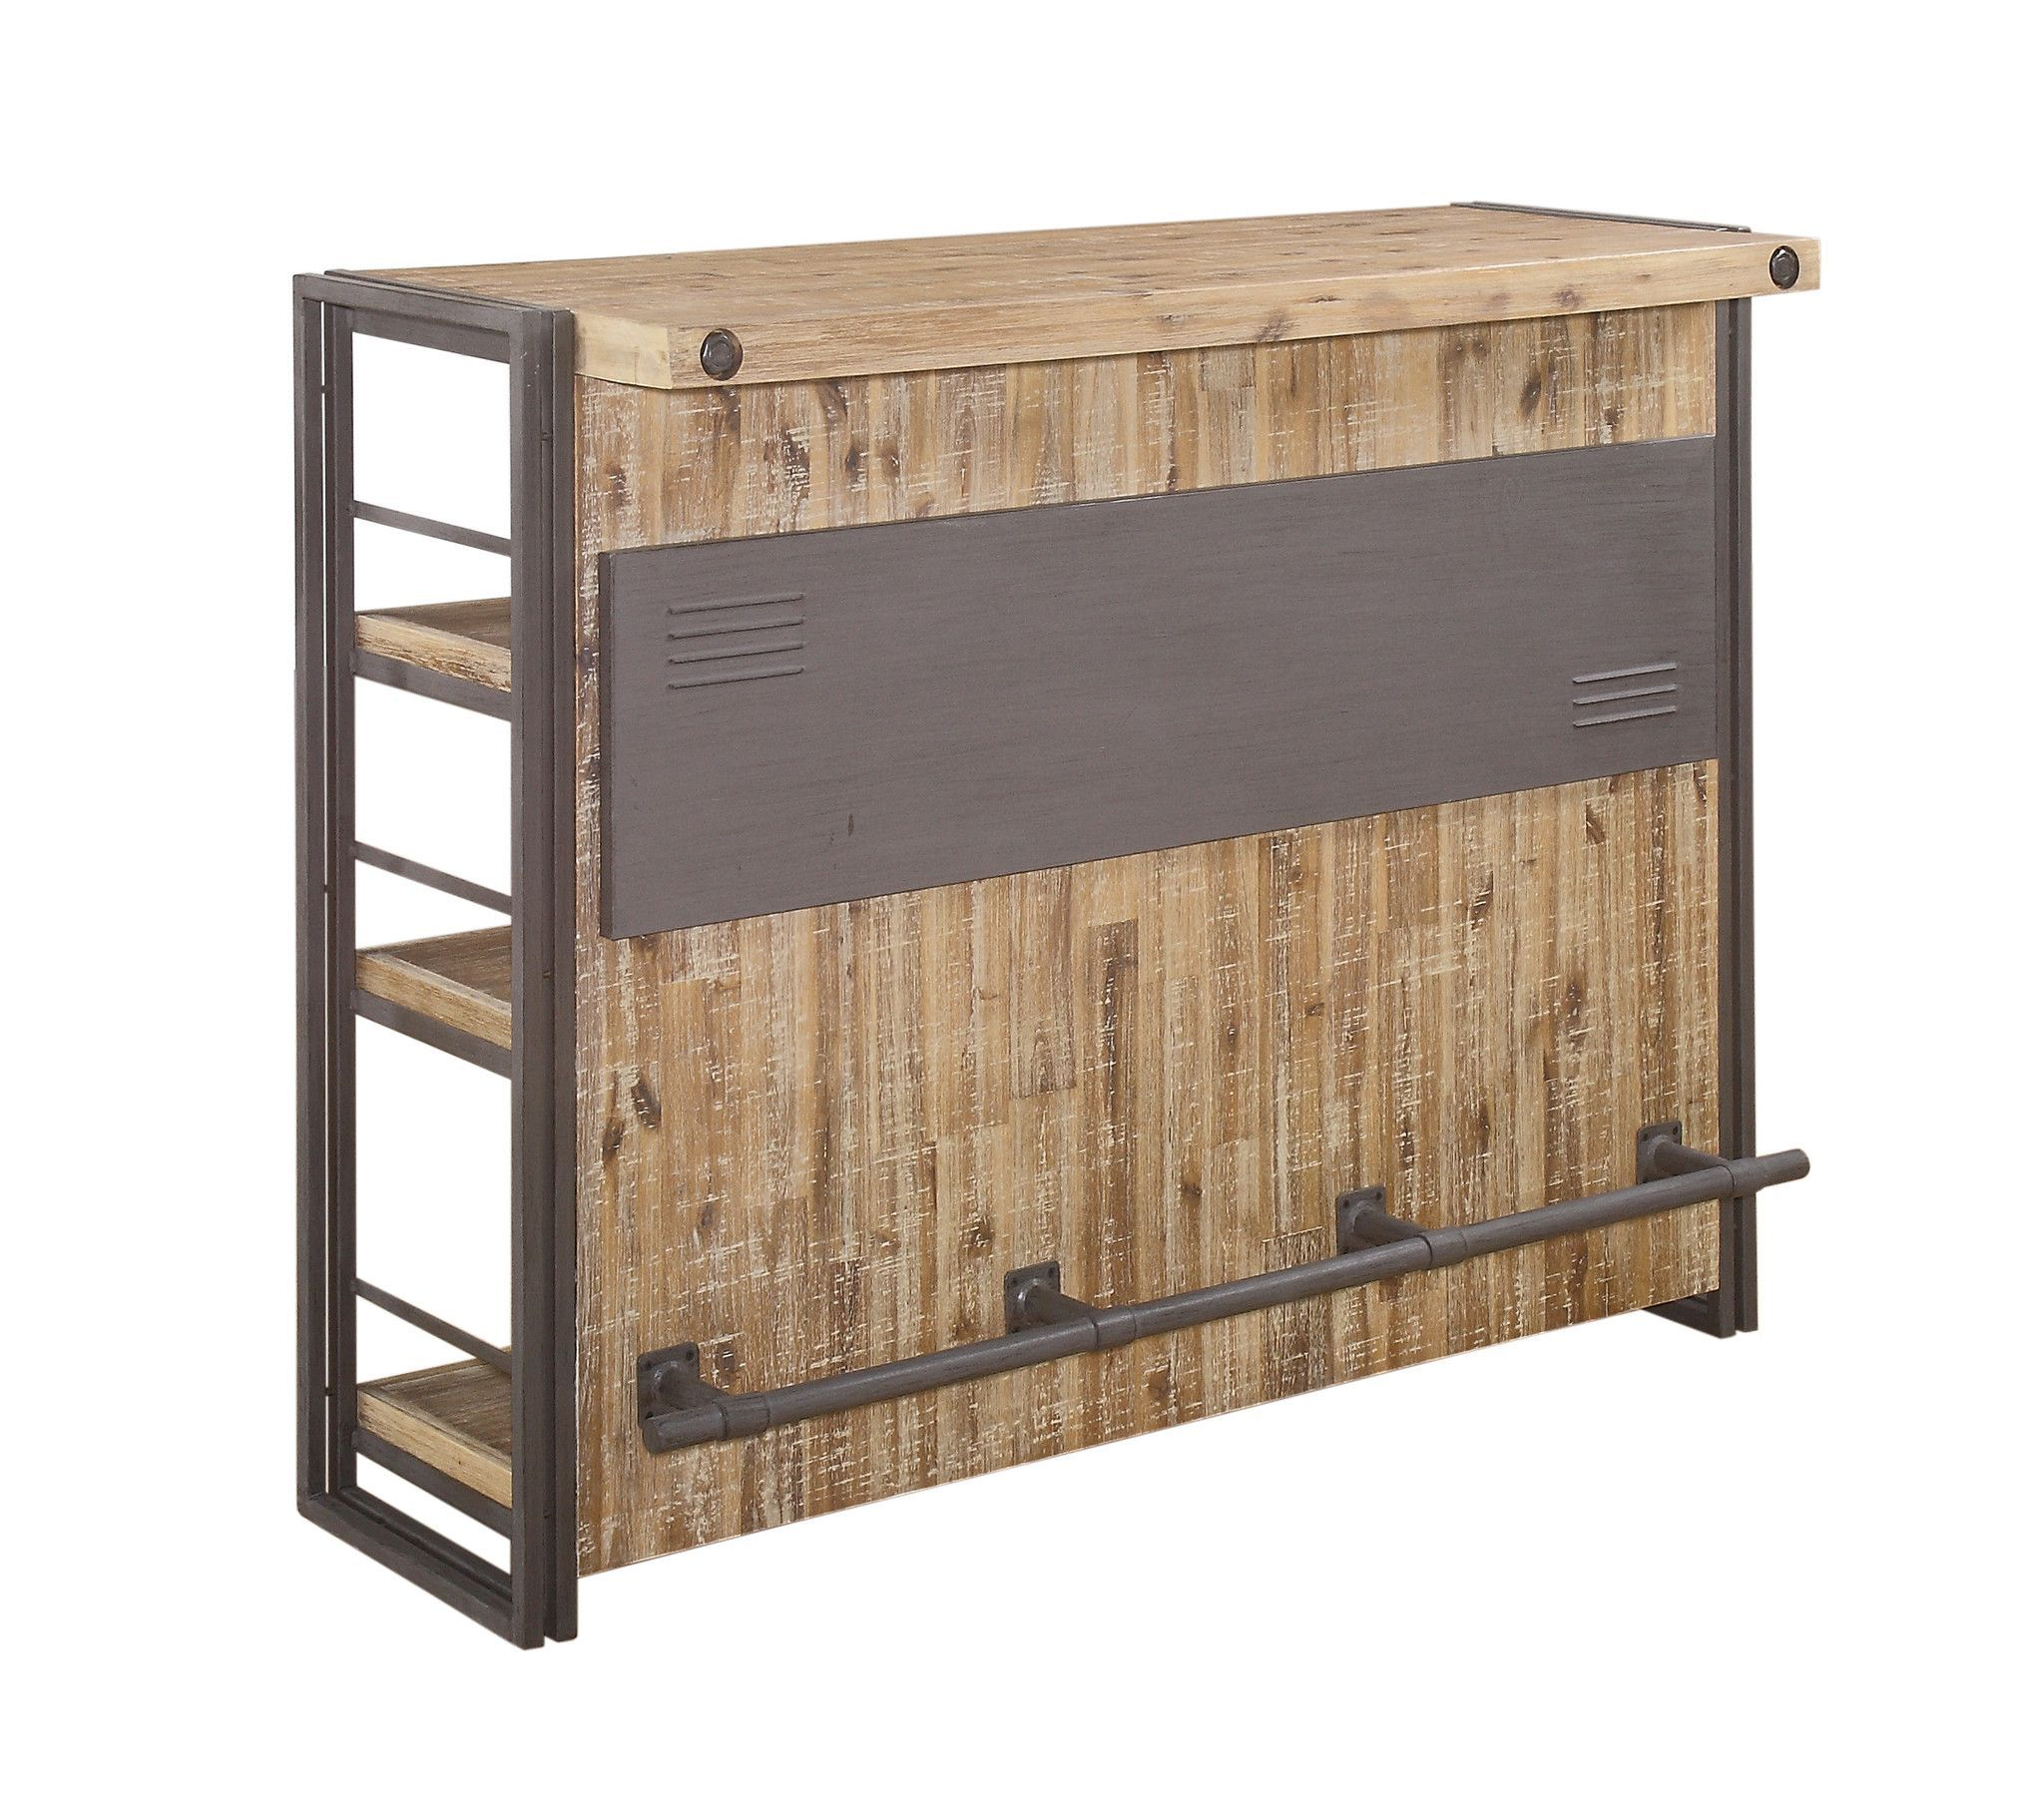 Brooklyn bar large acacia wood powder coated steel